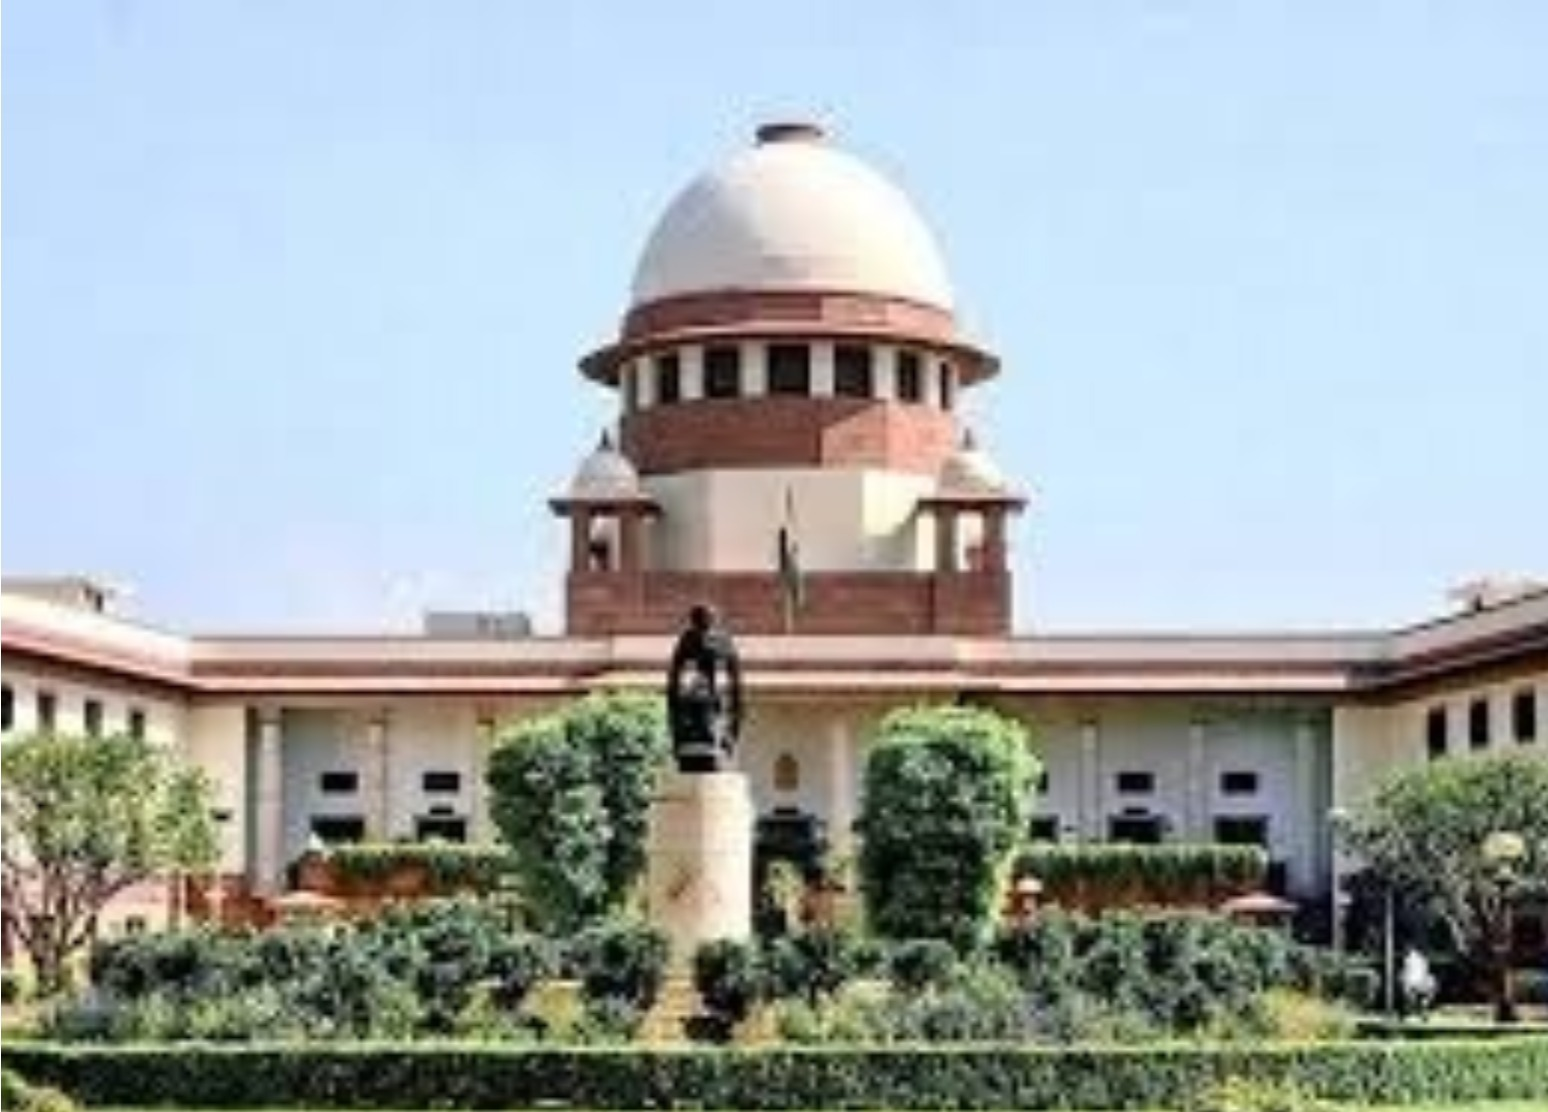 Whether it's AAP or Centre: SC Favoured Democracy